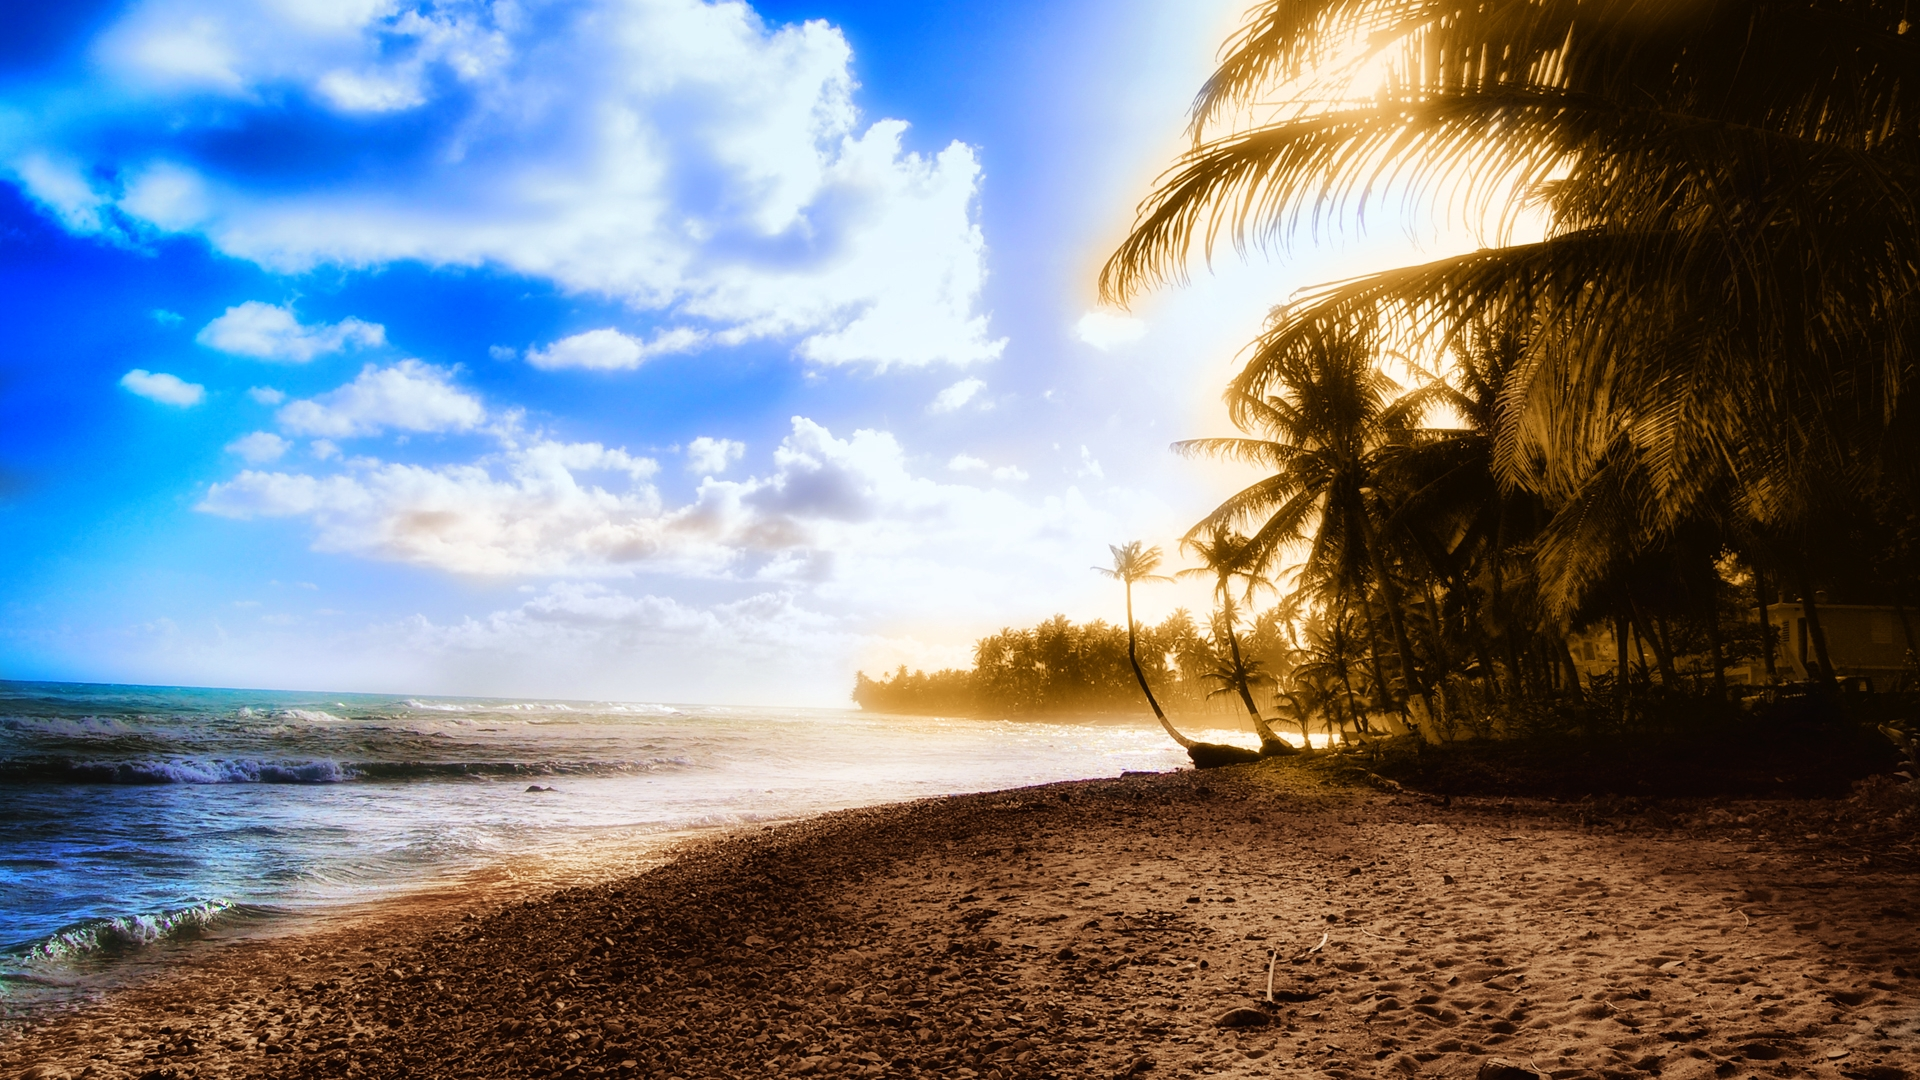 Stunning Beach Wallpaper Hd Wallpapers